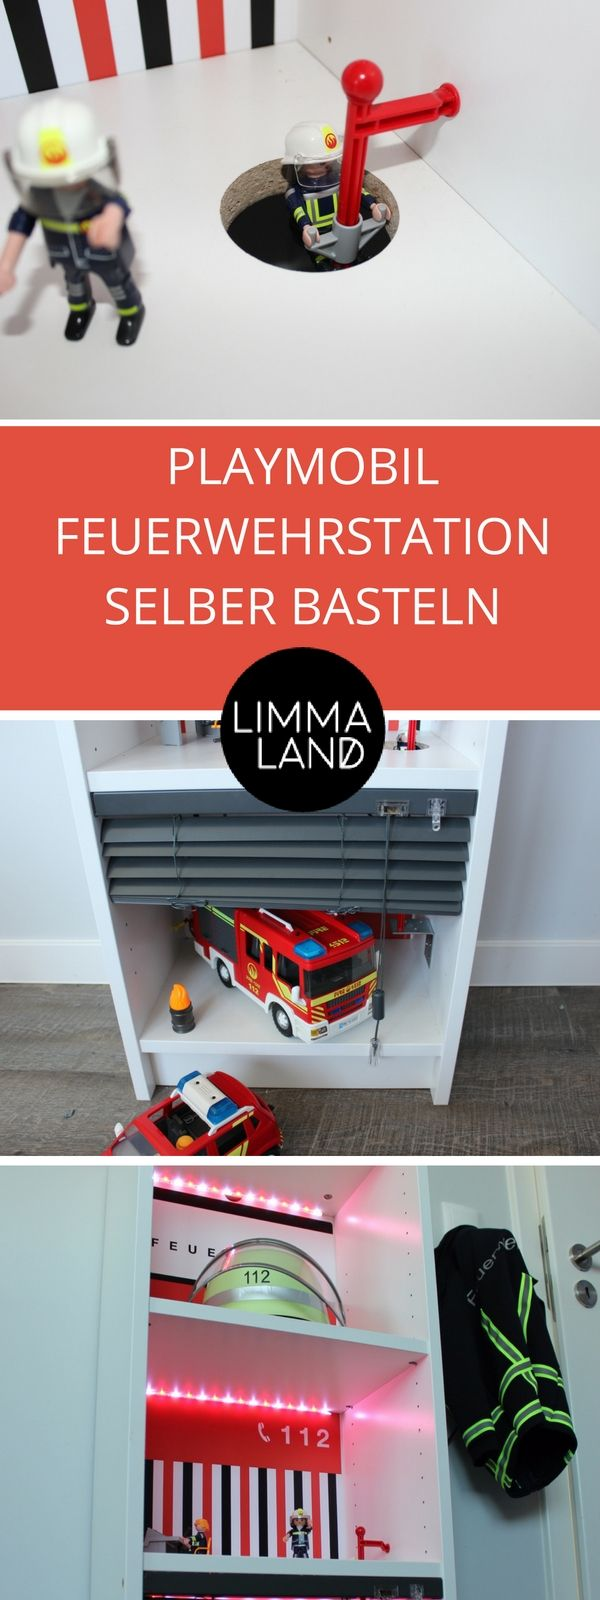 playmobil feuerwehrstation selber basteln ikea hack. Black Bedroom Furniture Sets. Home Design Ideas